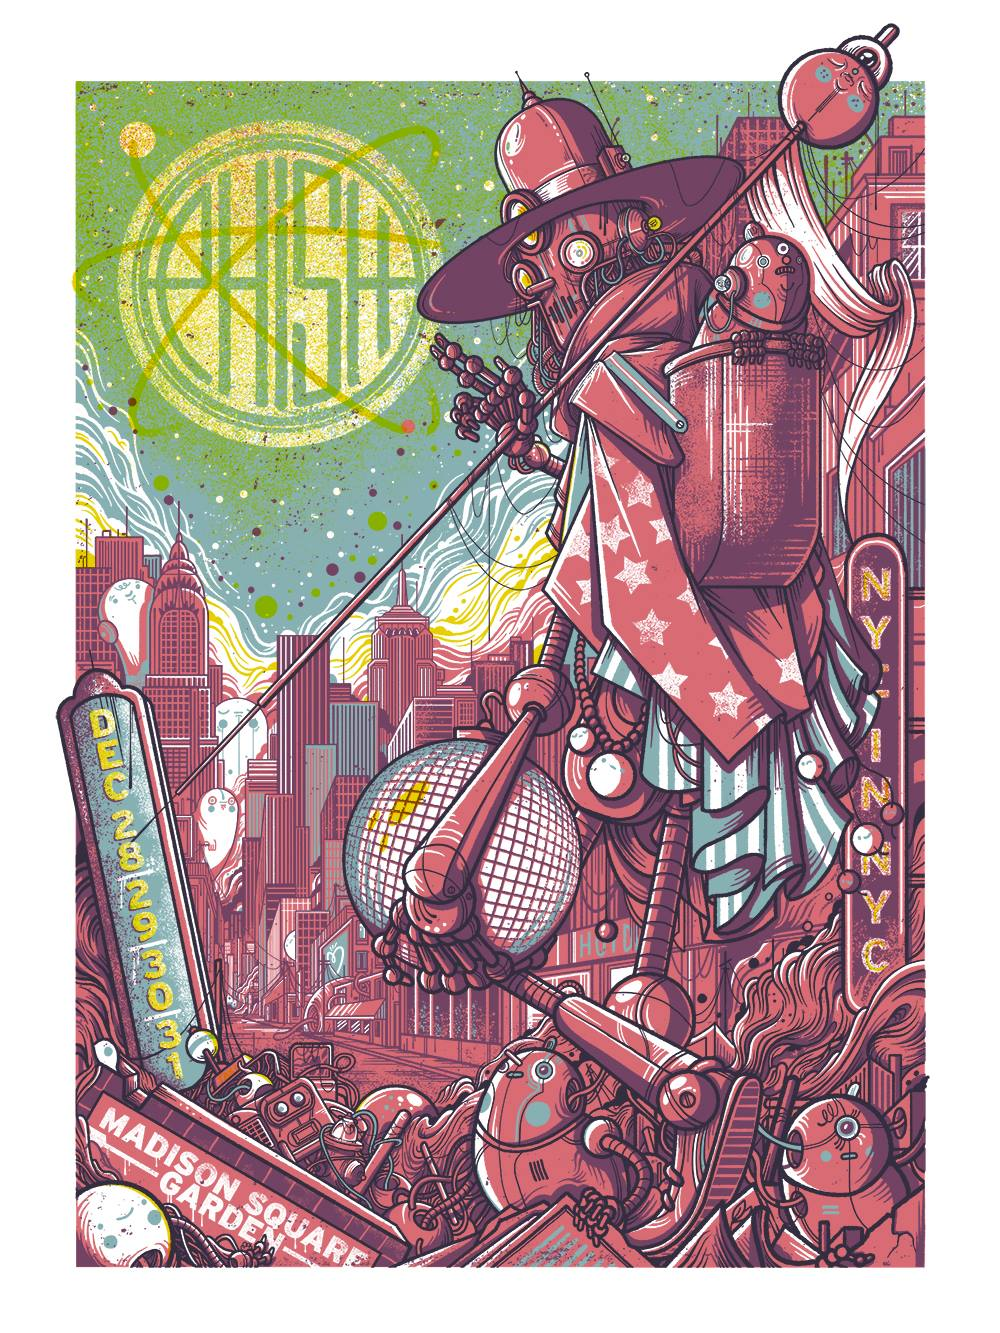 Phish Signed Poster Dec 28 31 2016 Madison Square Garden Mimi Fishman Foundation Charity